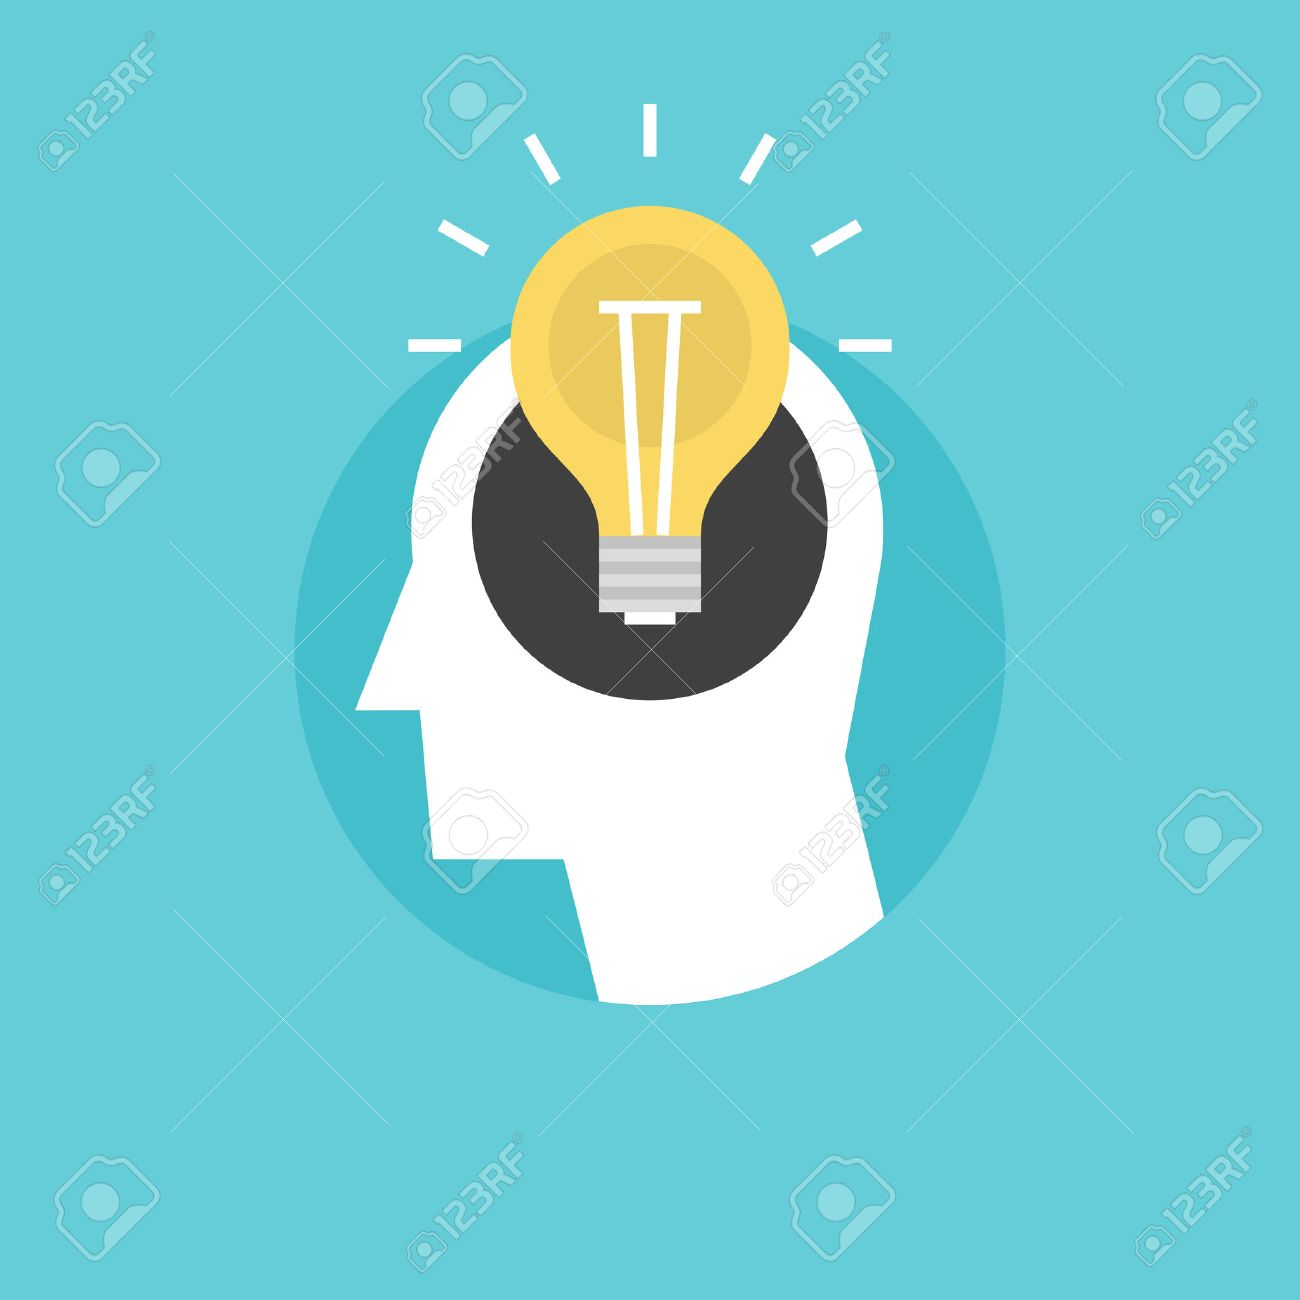 New bright idea form human head, thinking about success solution, lightbulb as creativity metaphor. Flat icon modern design style vector illustration concept. - 34138245